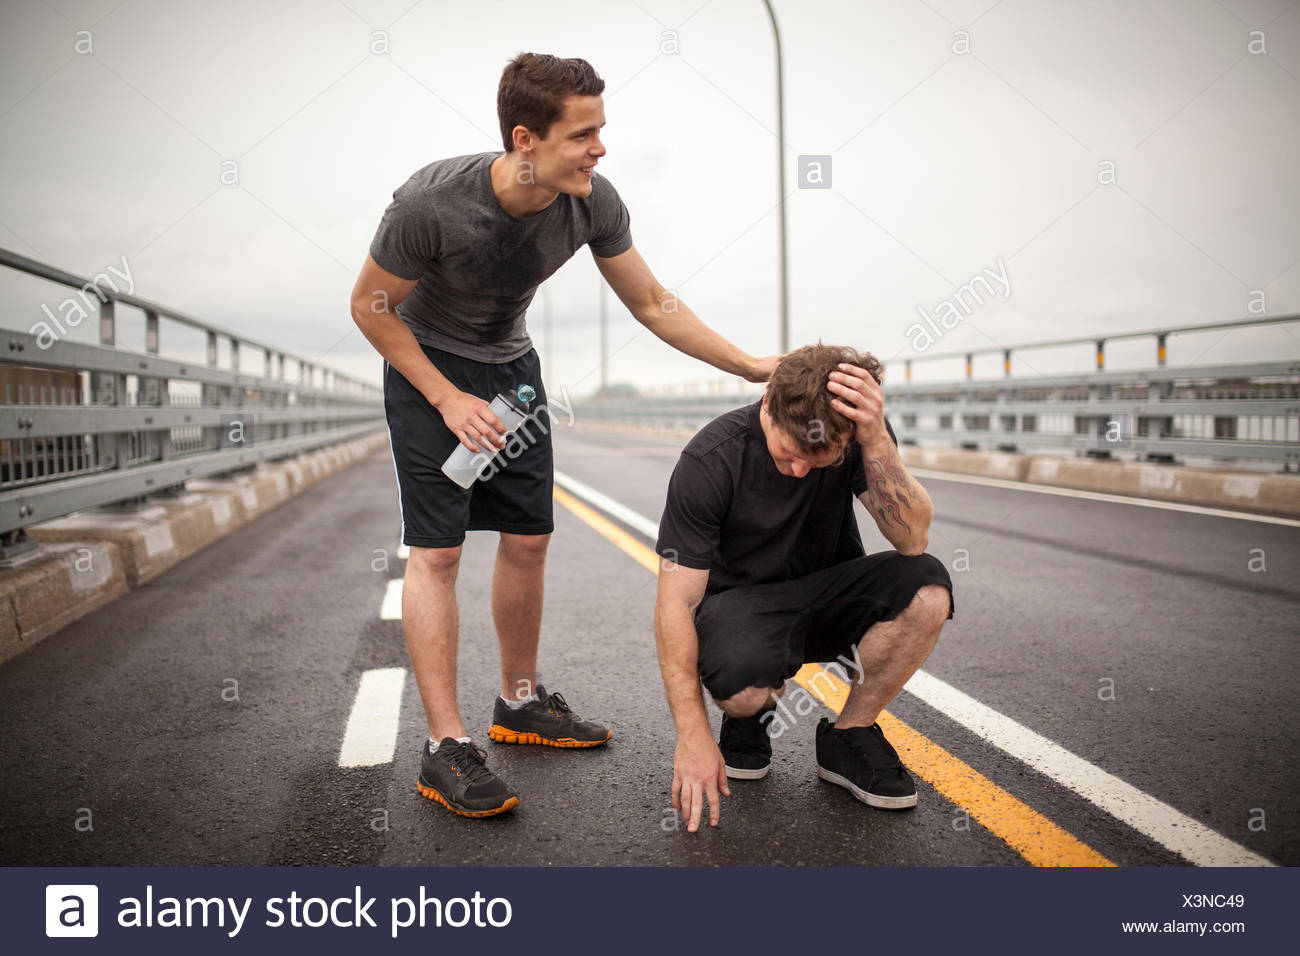 Young man reassuring friend - Stock Image